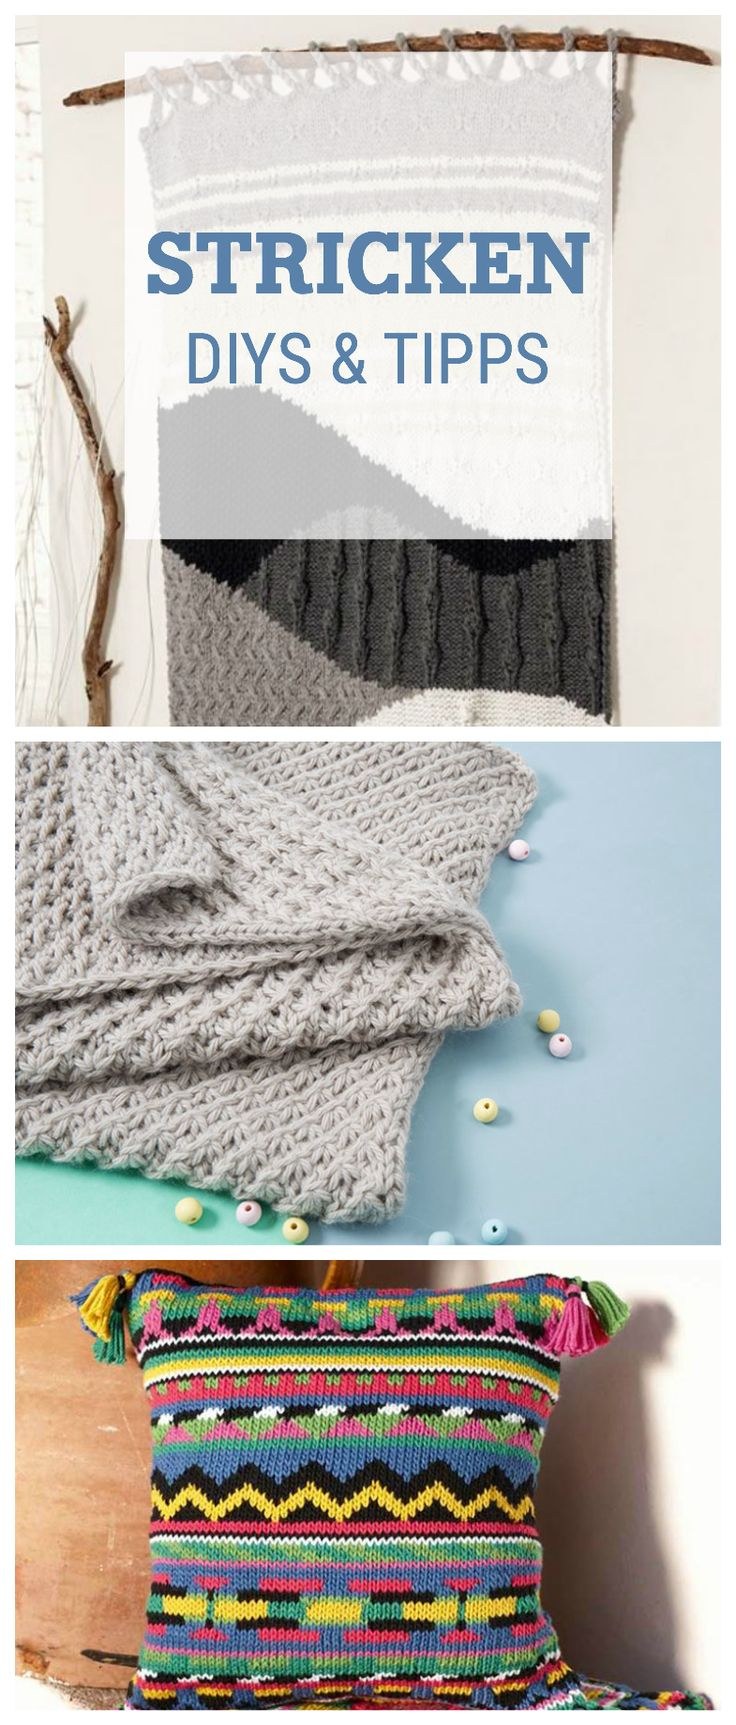 Strickanleitungen für Dein Zuhause: DIYs und Tipps für gestrickte Wohndeko / knitted home decor: diy patterns for knitting via DaWanda.com